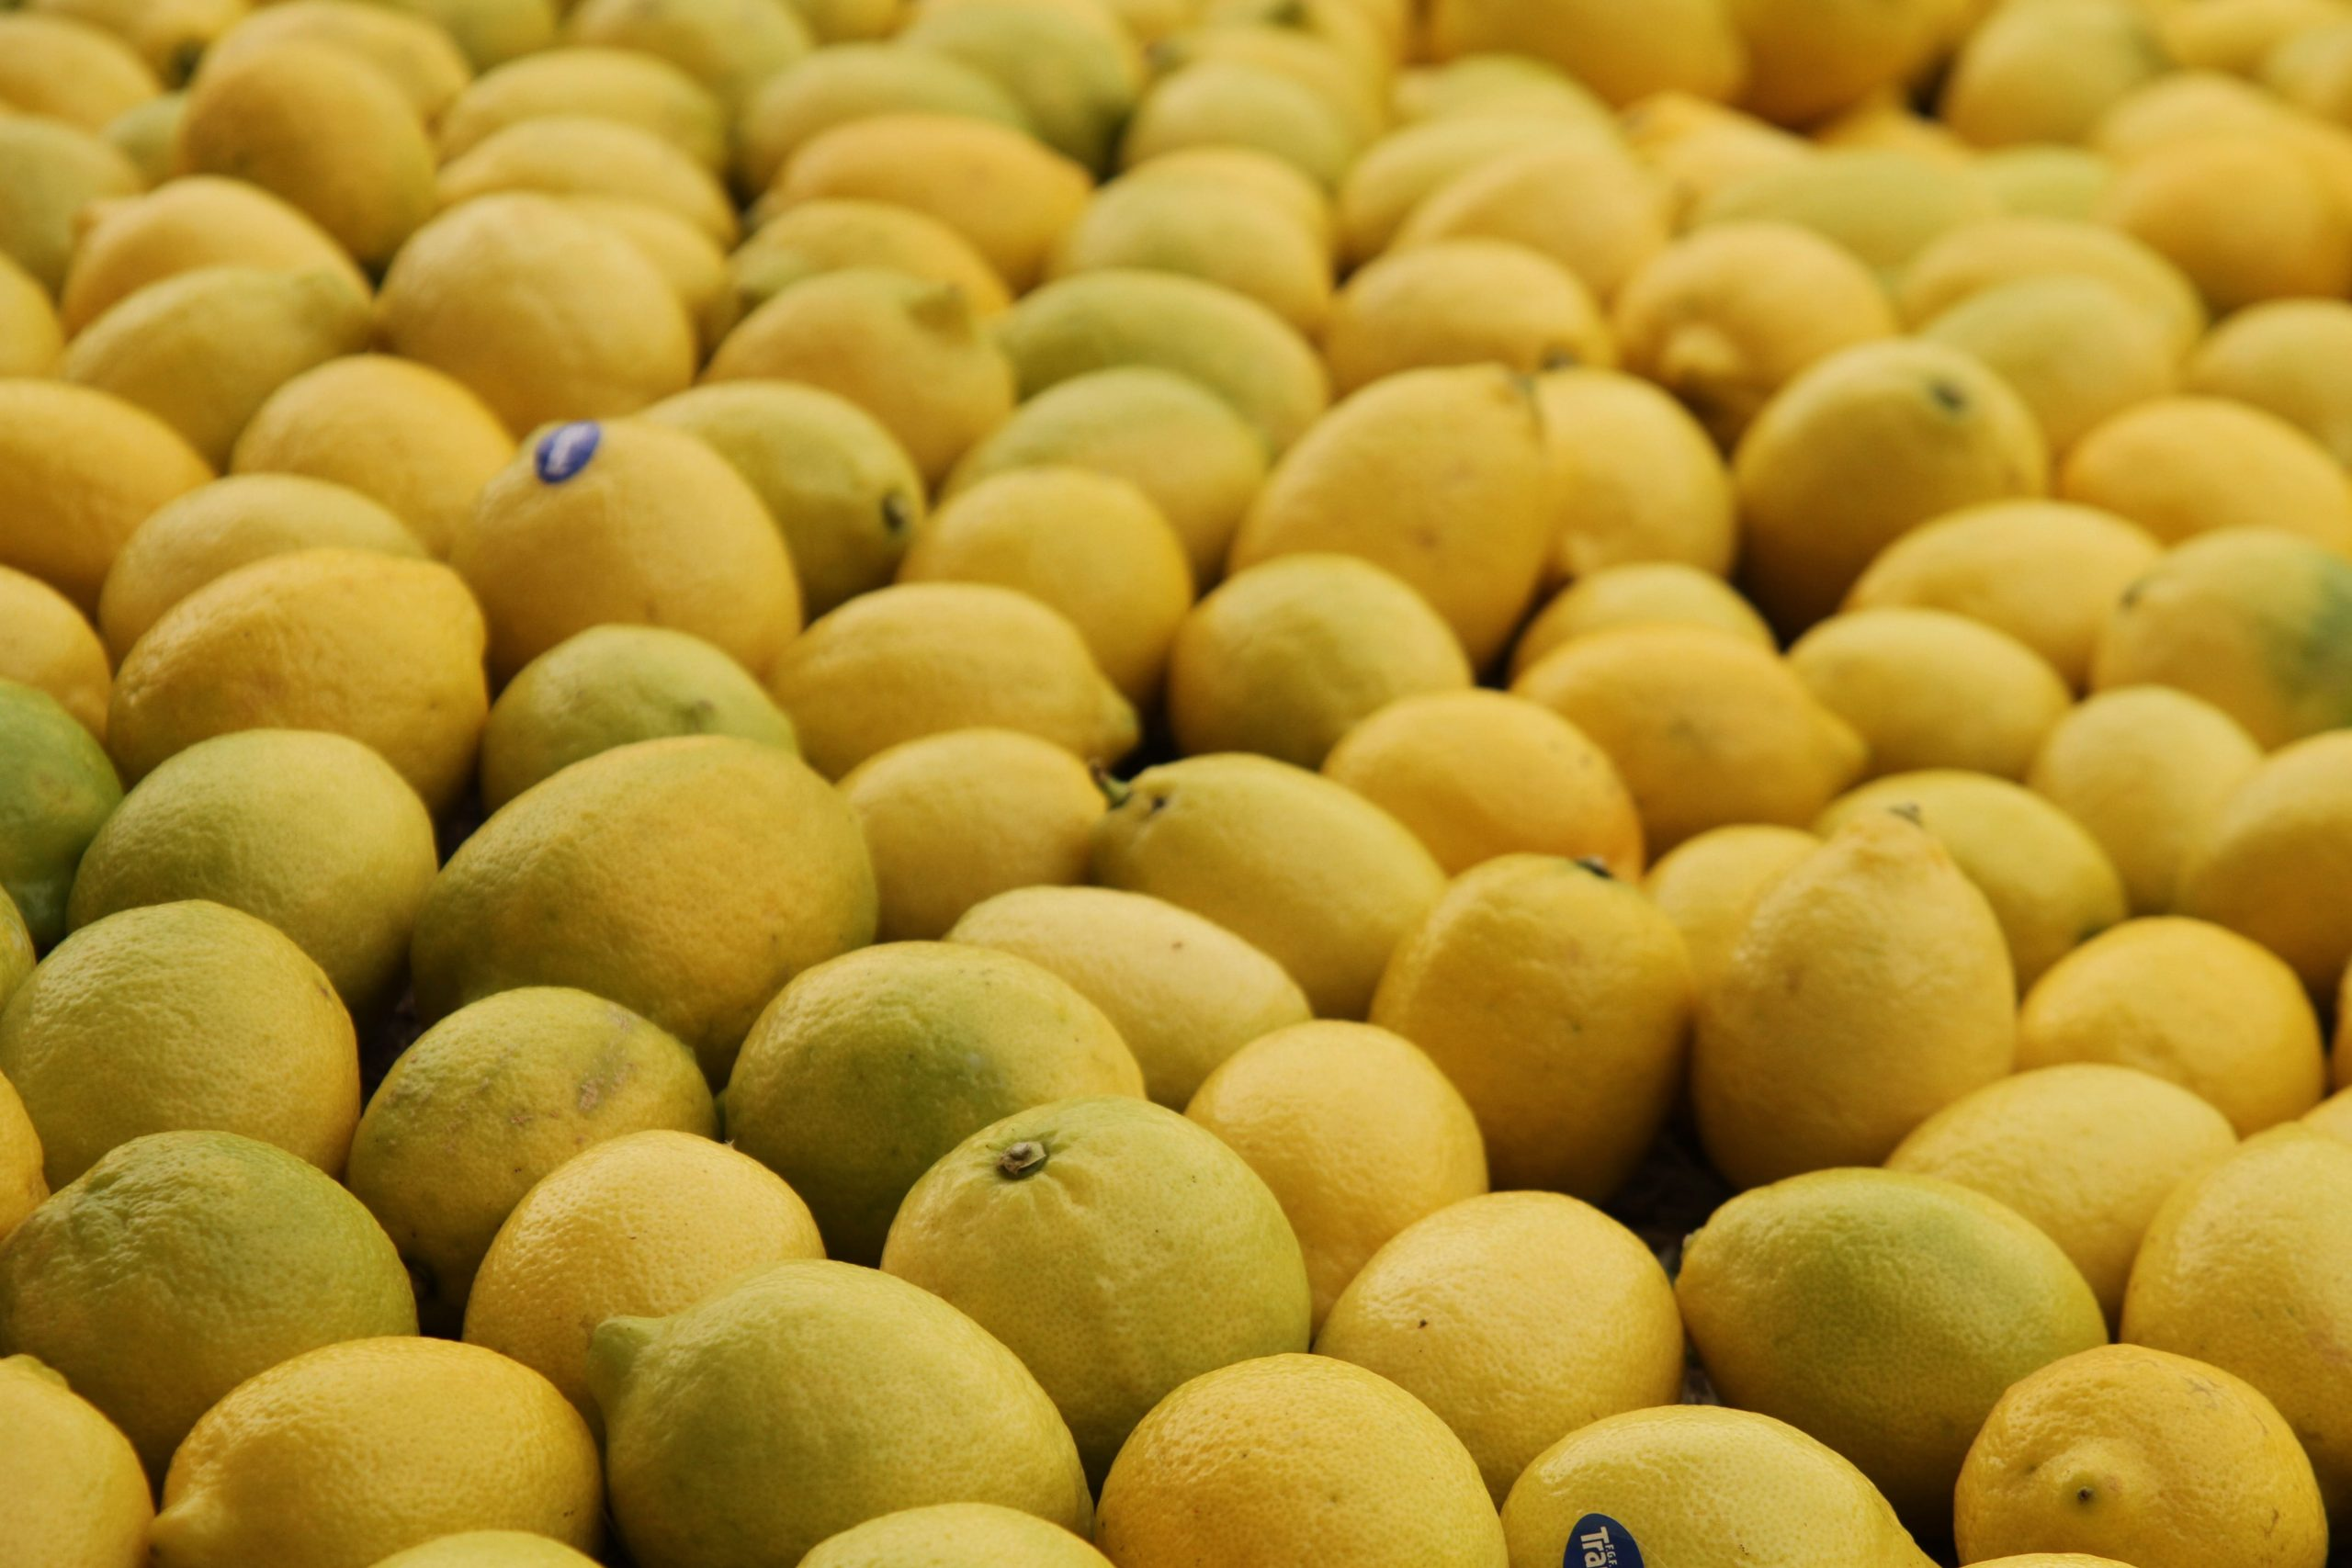 Argentine fresh fruit exports up 6% from 2019